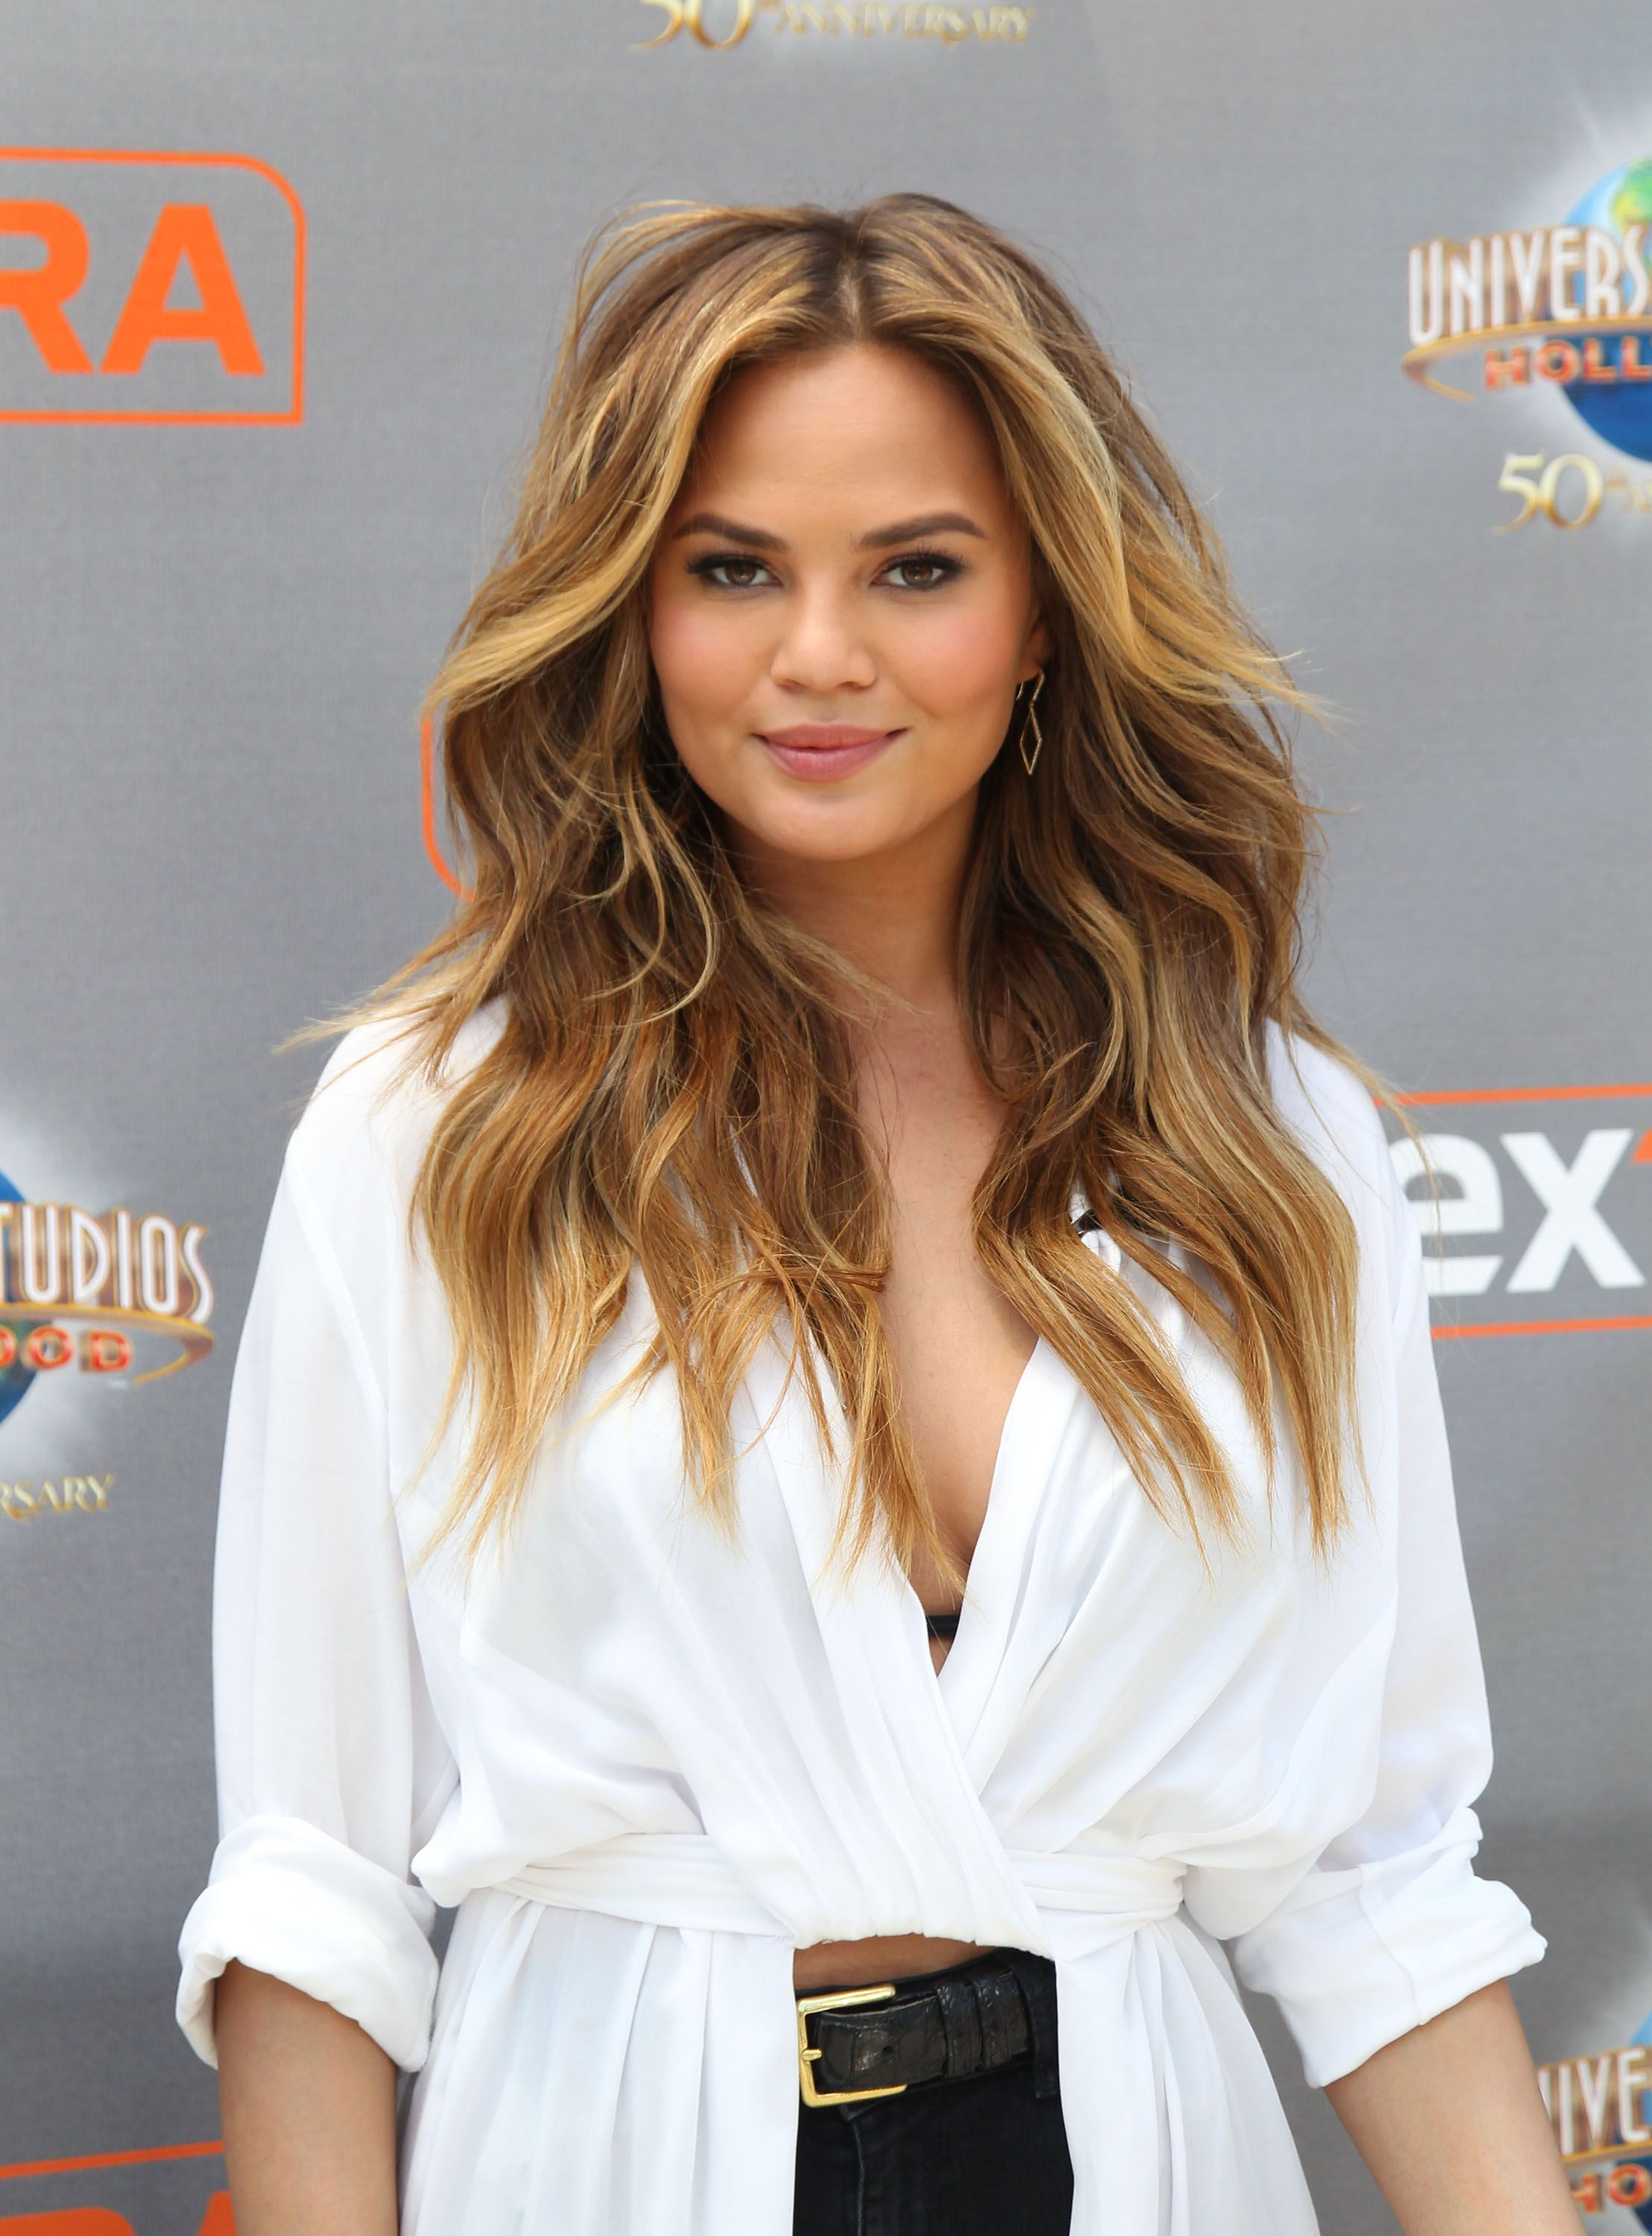 """Model Chrissy Teigen visits """"Extra"""" at Universal Studios Hollywood on May 20, 2015 